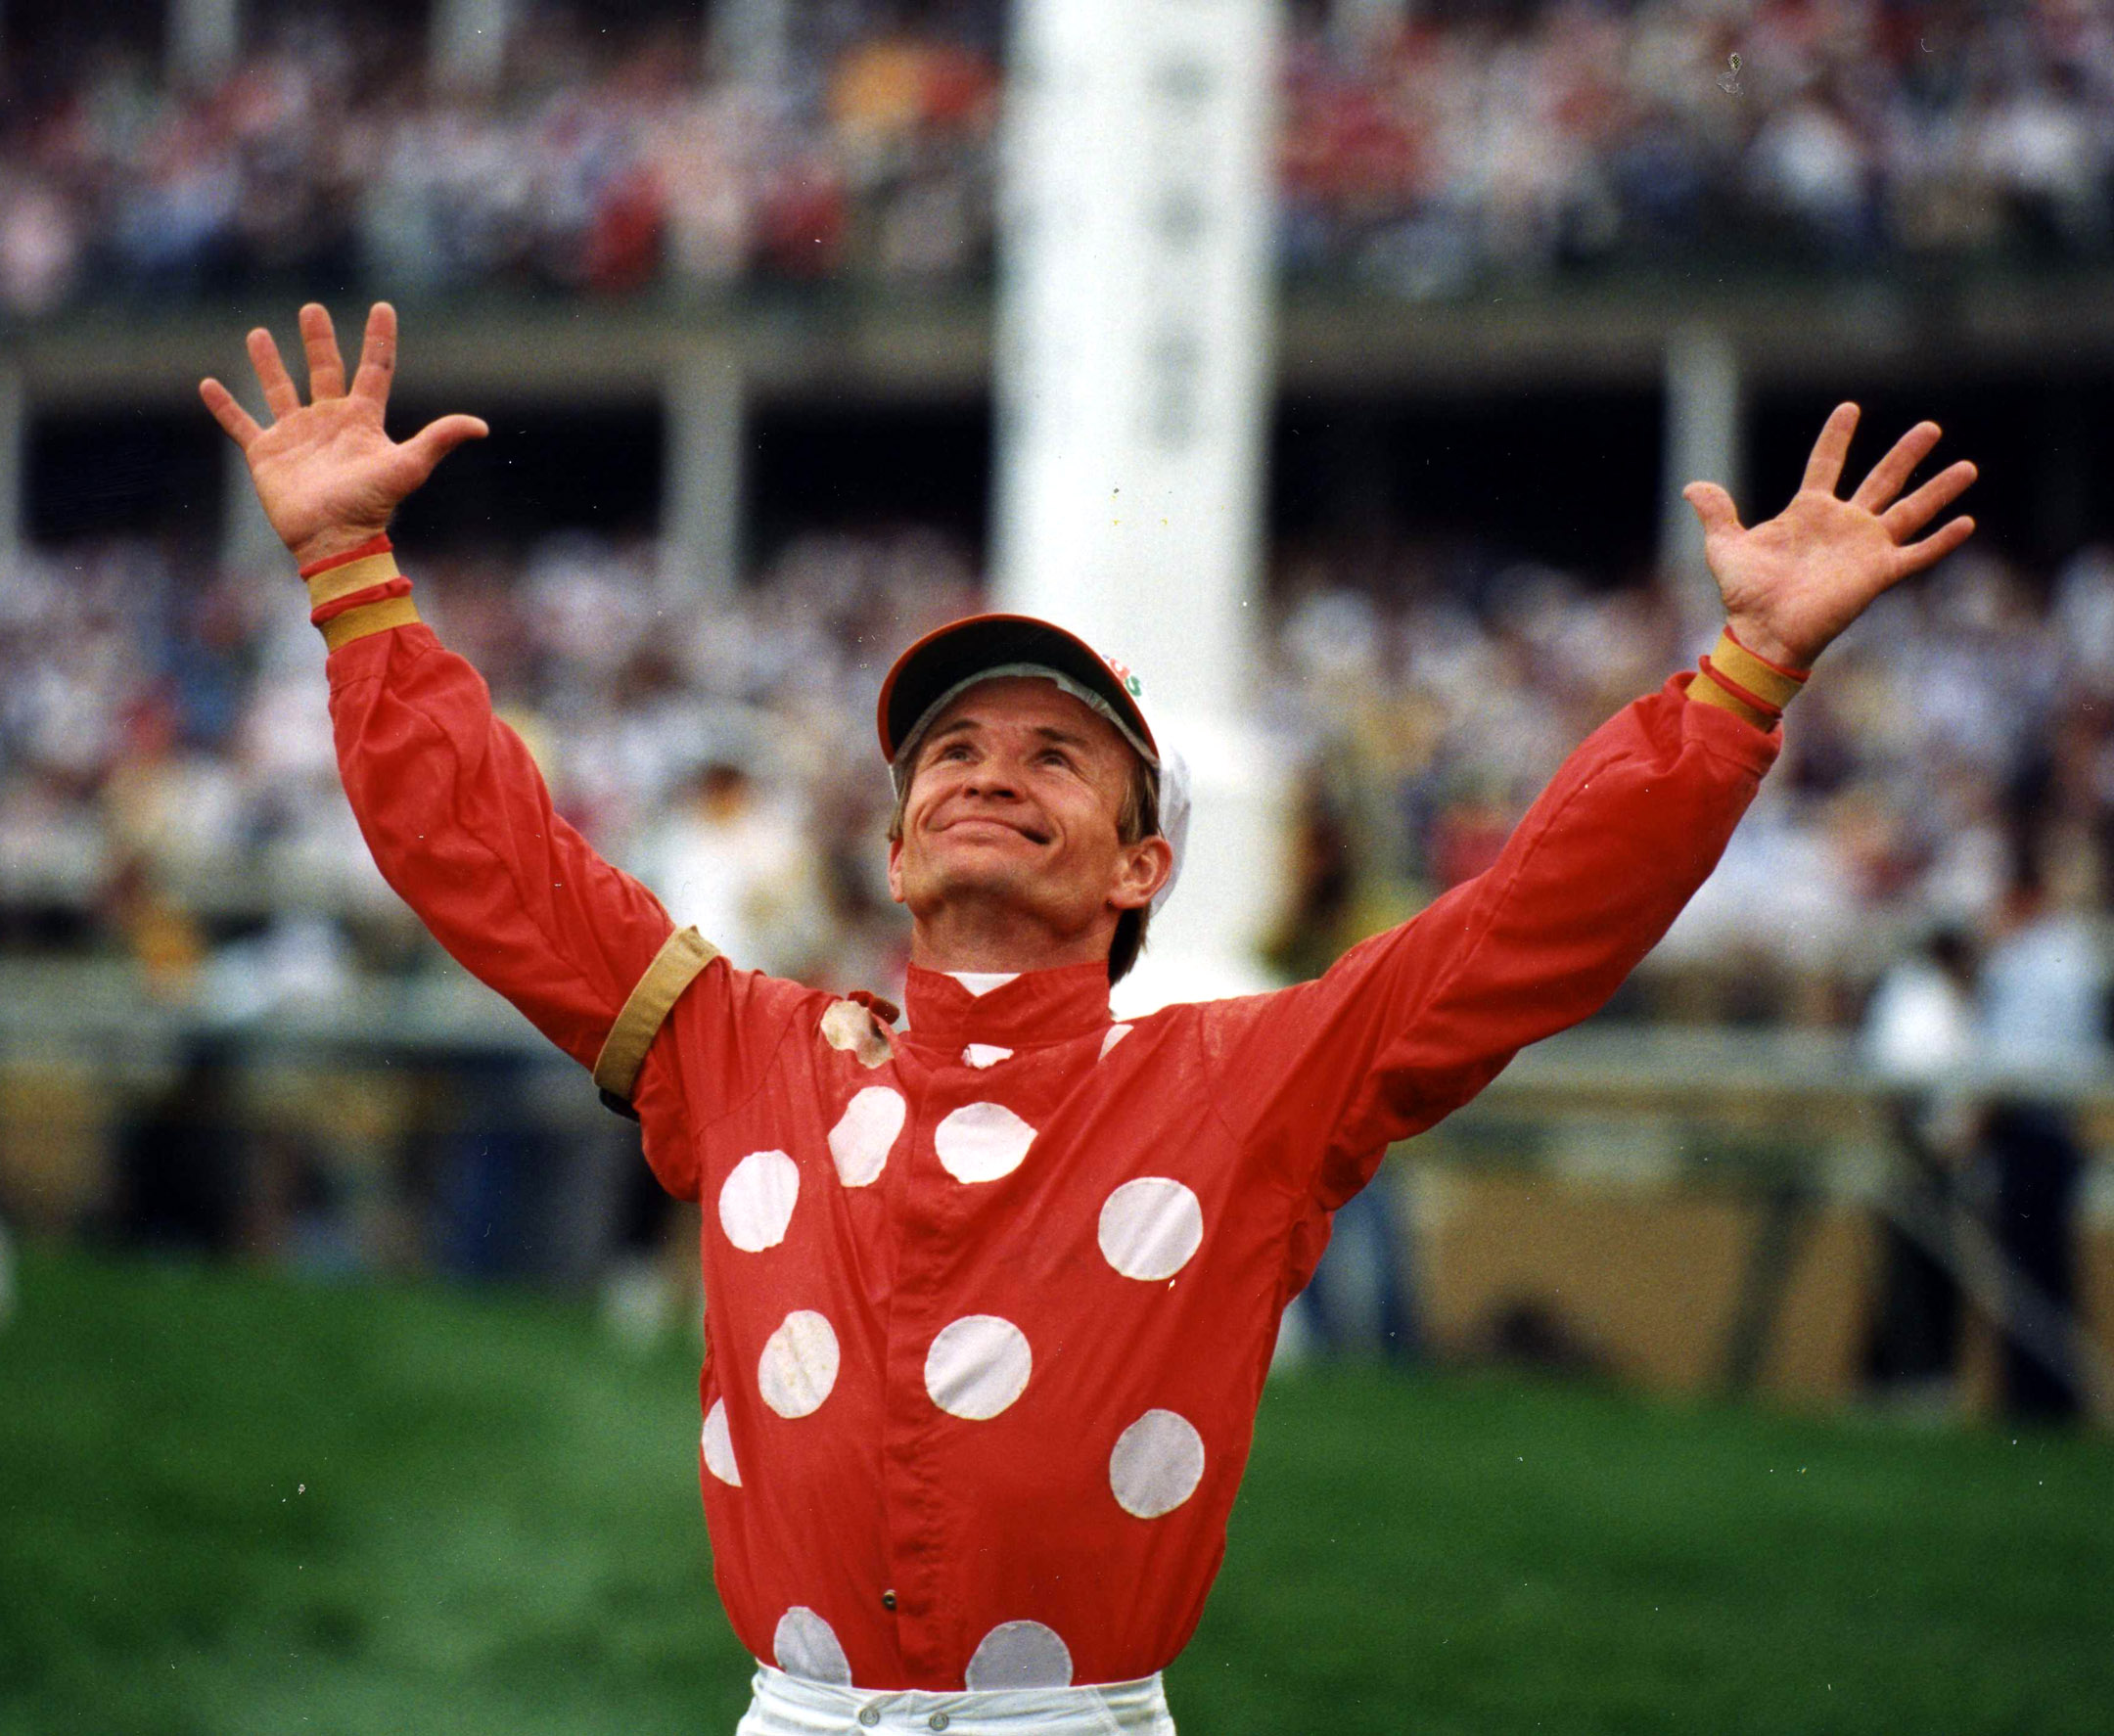 Pat Day celebrating after winning the 1992 Kentucky Derby with Lil E. Tee (Shigeki Kikkawa/Museum Collection)